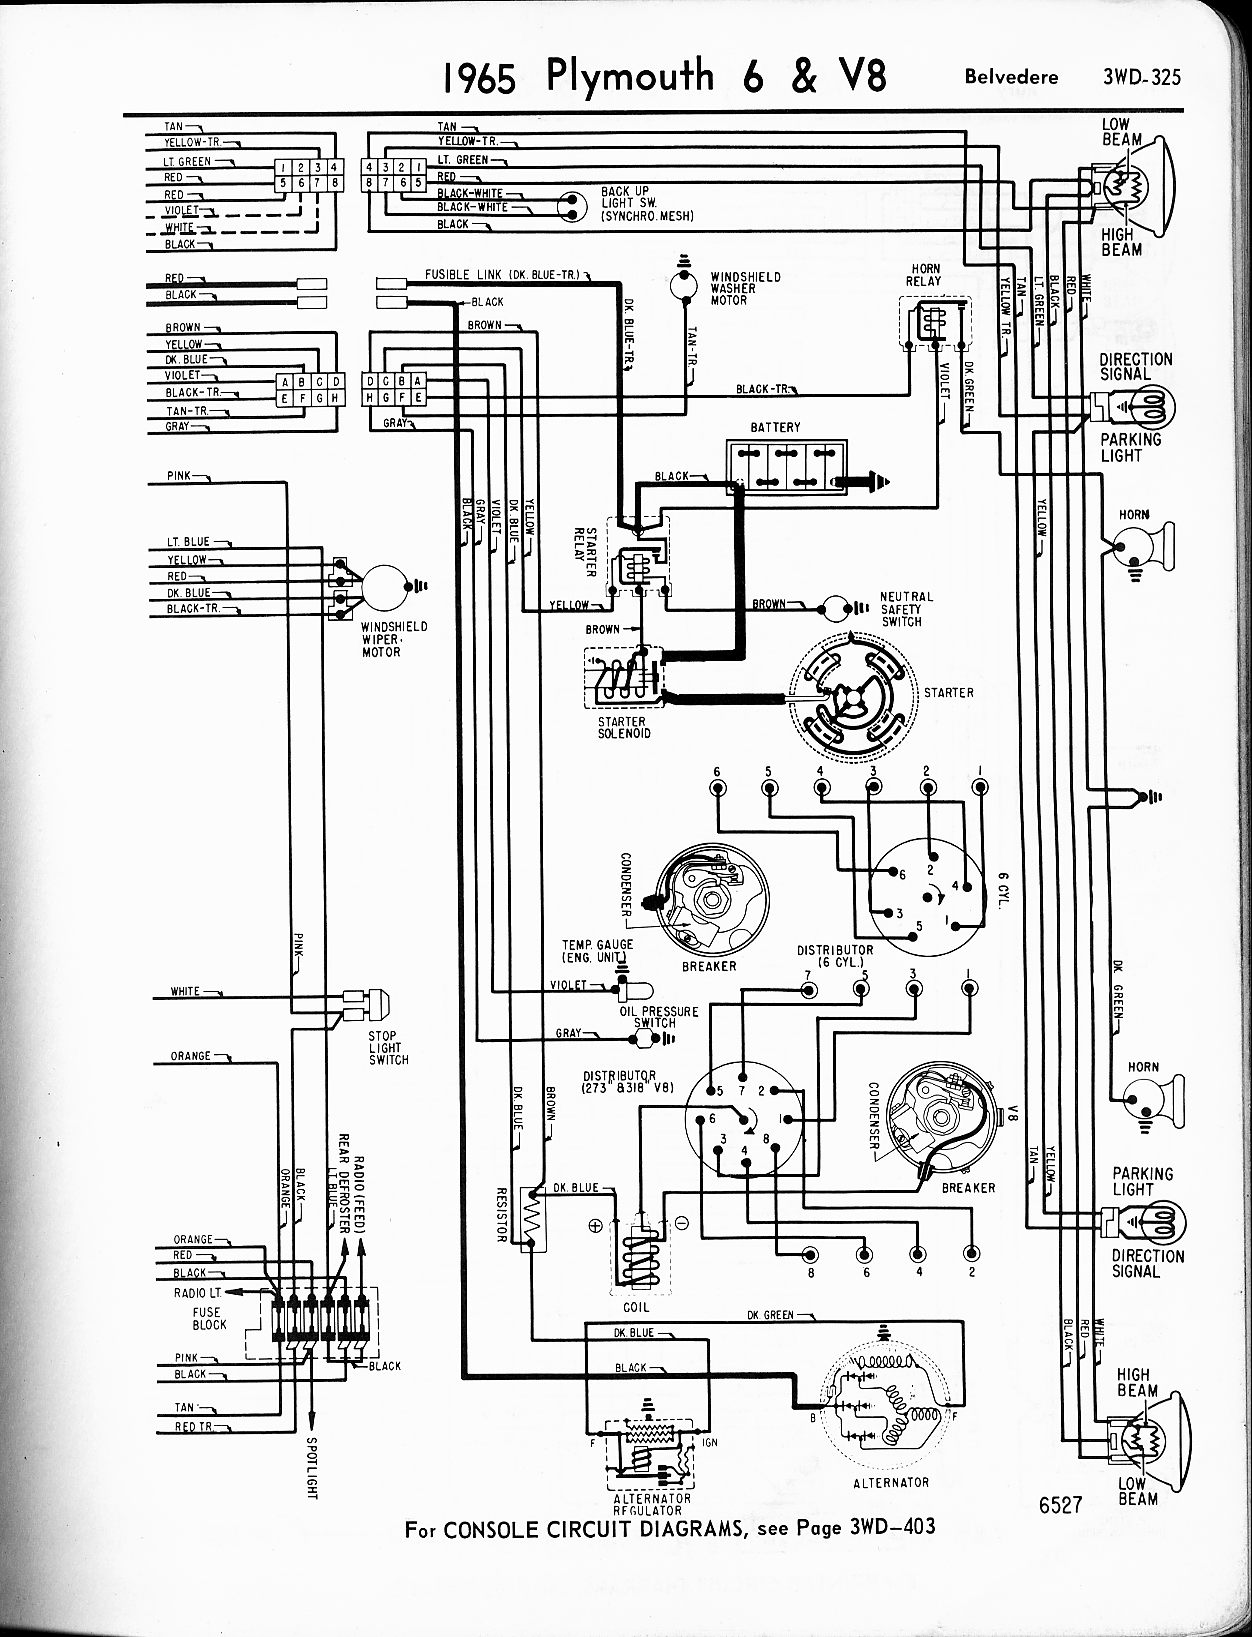 MWire5765 325 1956 1965 plymouth wiring the old car manual project 1975 plymouth duster wiring diagram at n-0.co